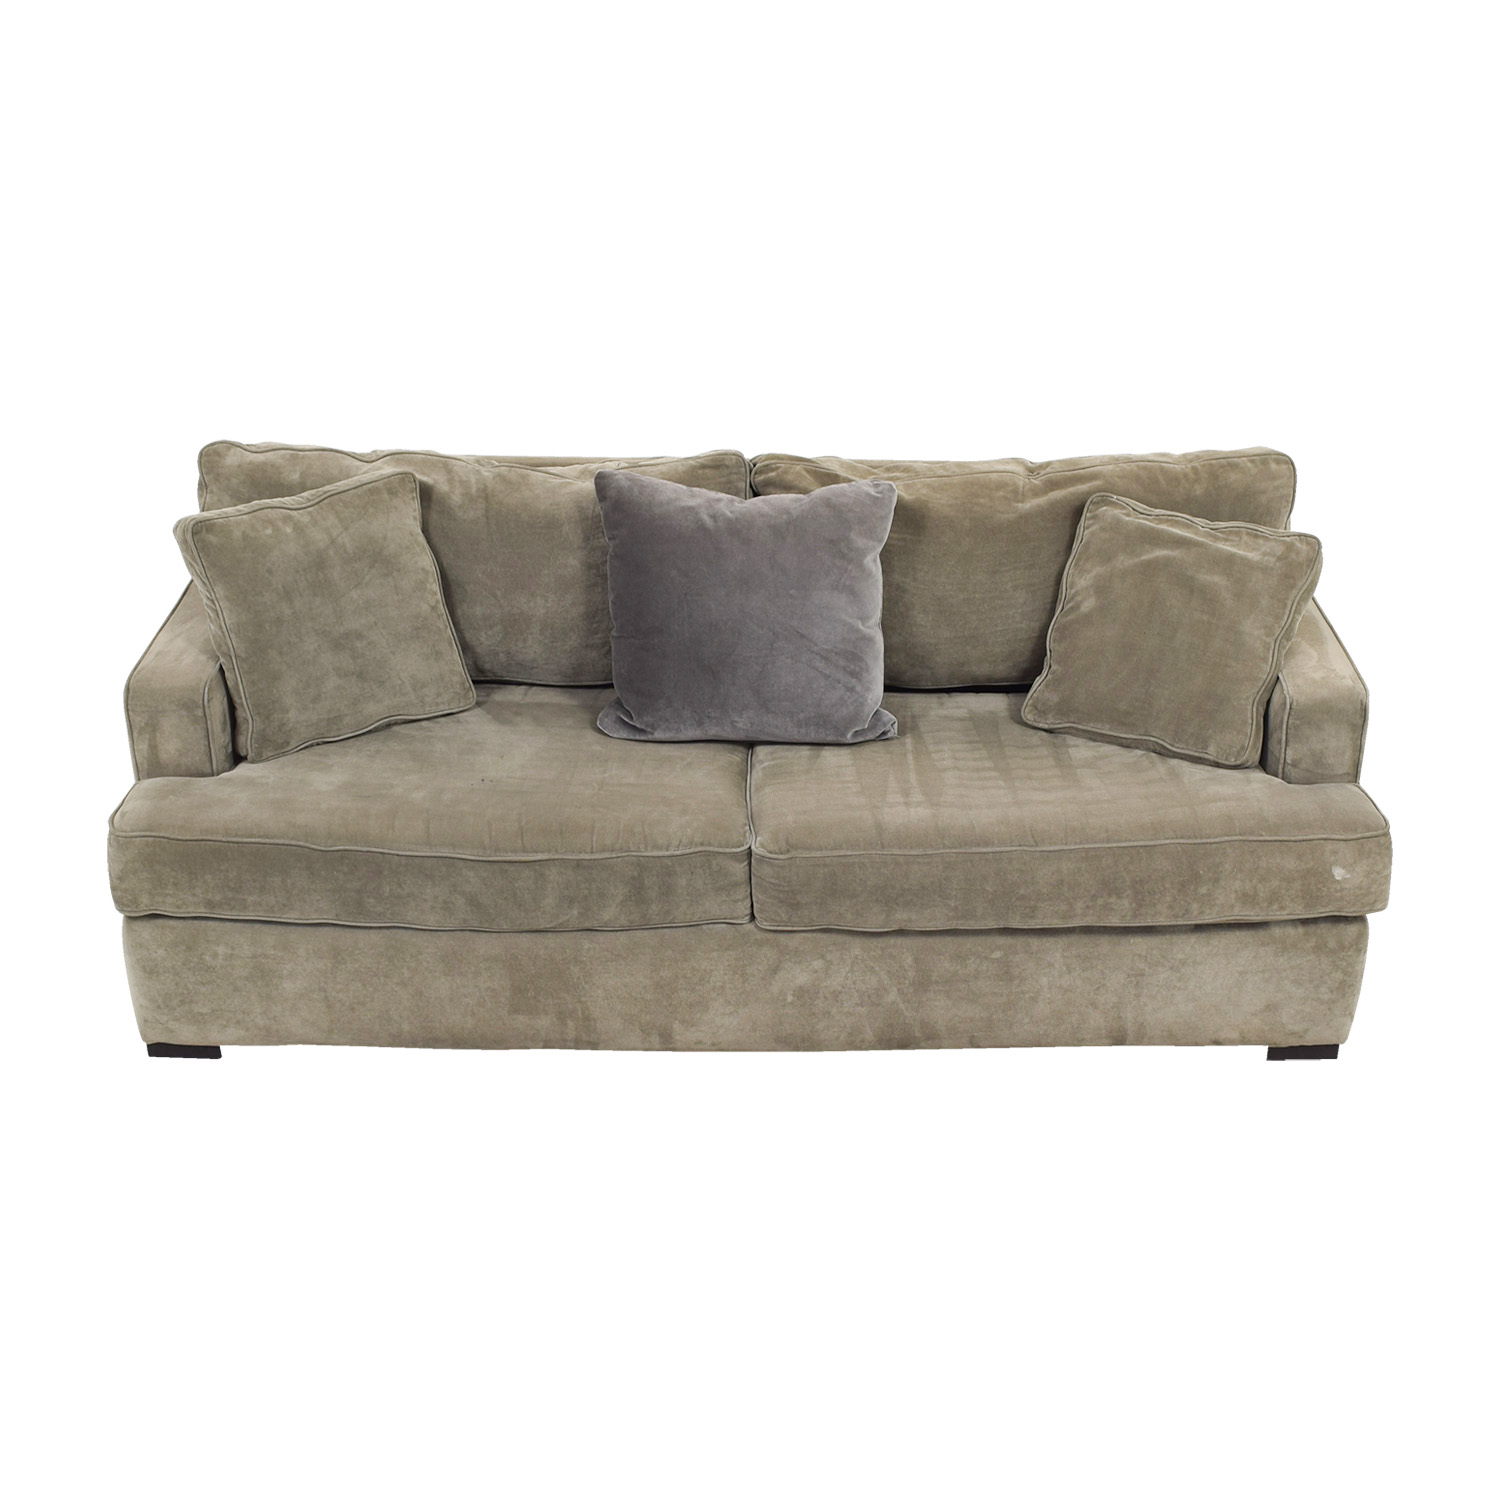 shop ABC Carpet & Home Velvet Grey Sofa ABC Carpet & Home Classic Sofas